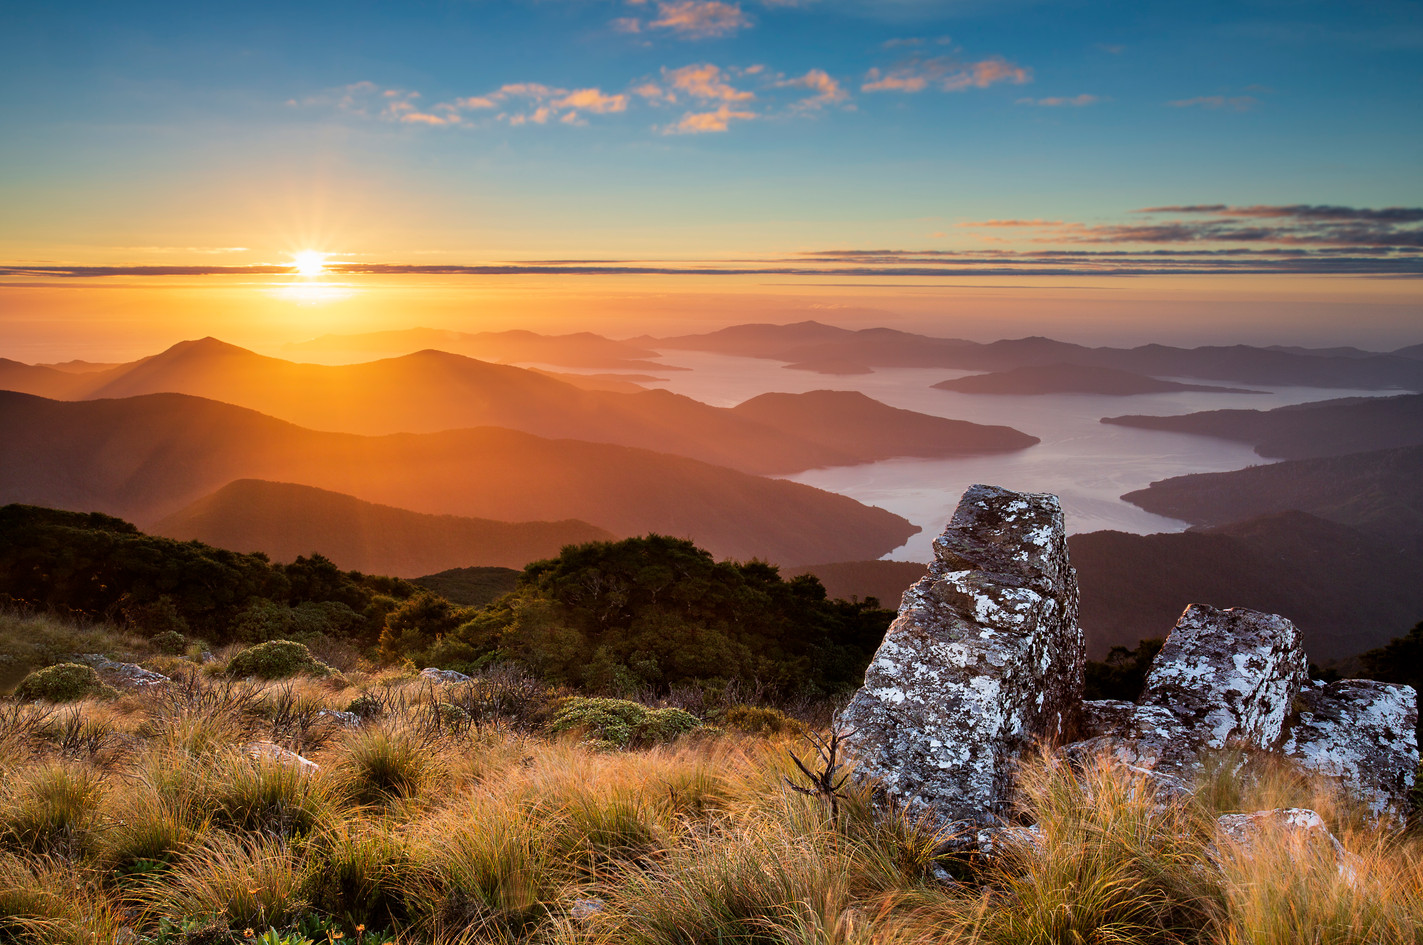 Sunrise over Marlborough Sounds from Mt Stokes